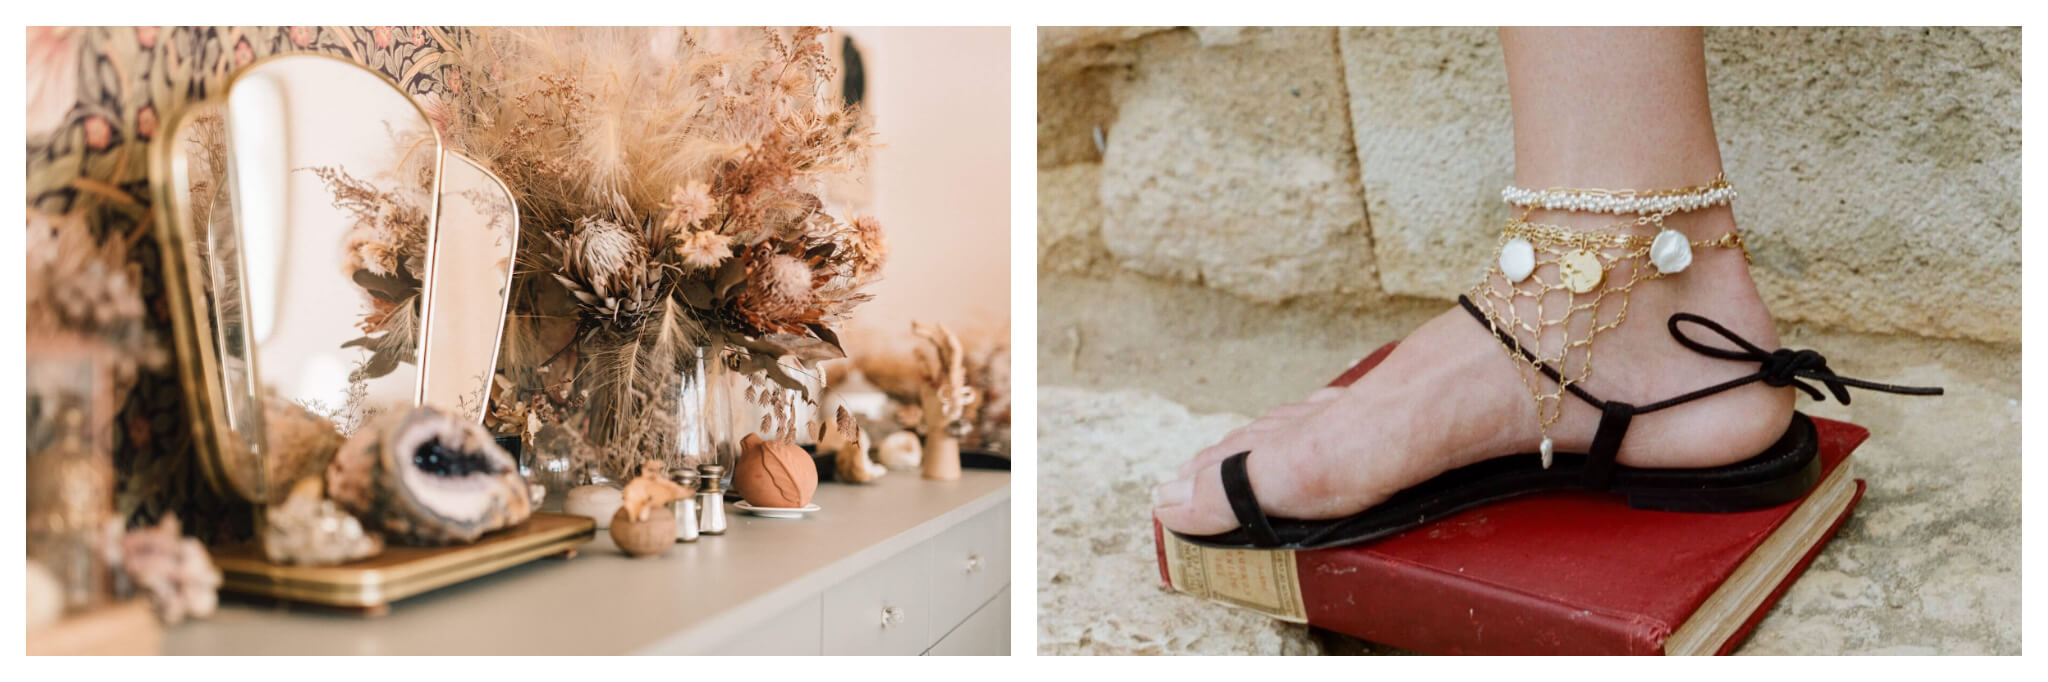 On left: At the Myrtille Beck shop in Paris' ninth arrondissement, clients are transported to a world laden with vintage charm, from the dried bouquets to the darling knick-knacks. On right: A the mesh gold anklet from Alighieri drapes gracefully over a sandalled foot. The brand and other cutting-edge designers showcase in the Galeries Lafayette on the Champs Elysées in Paris.